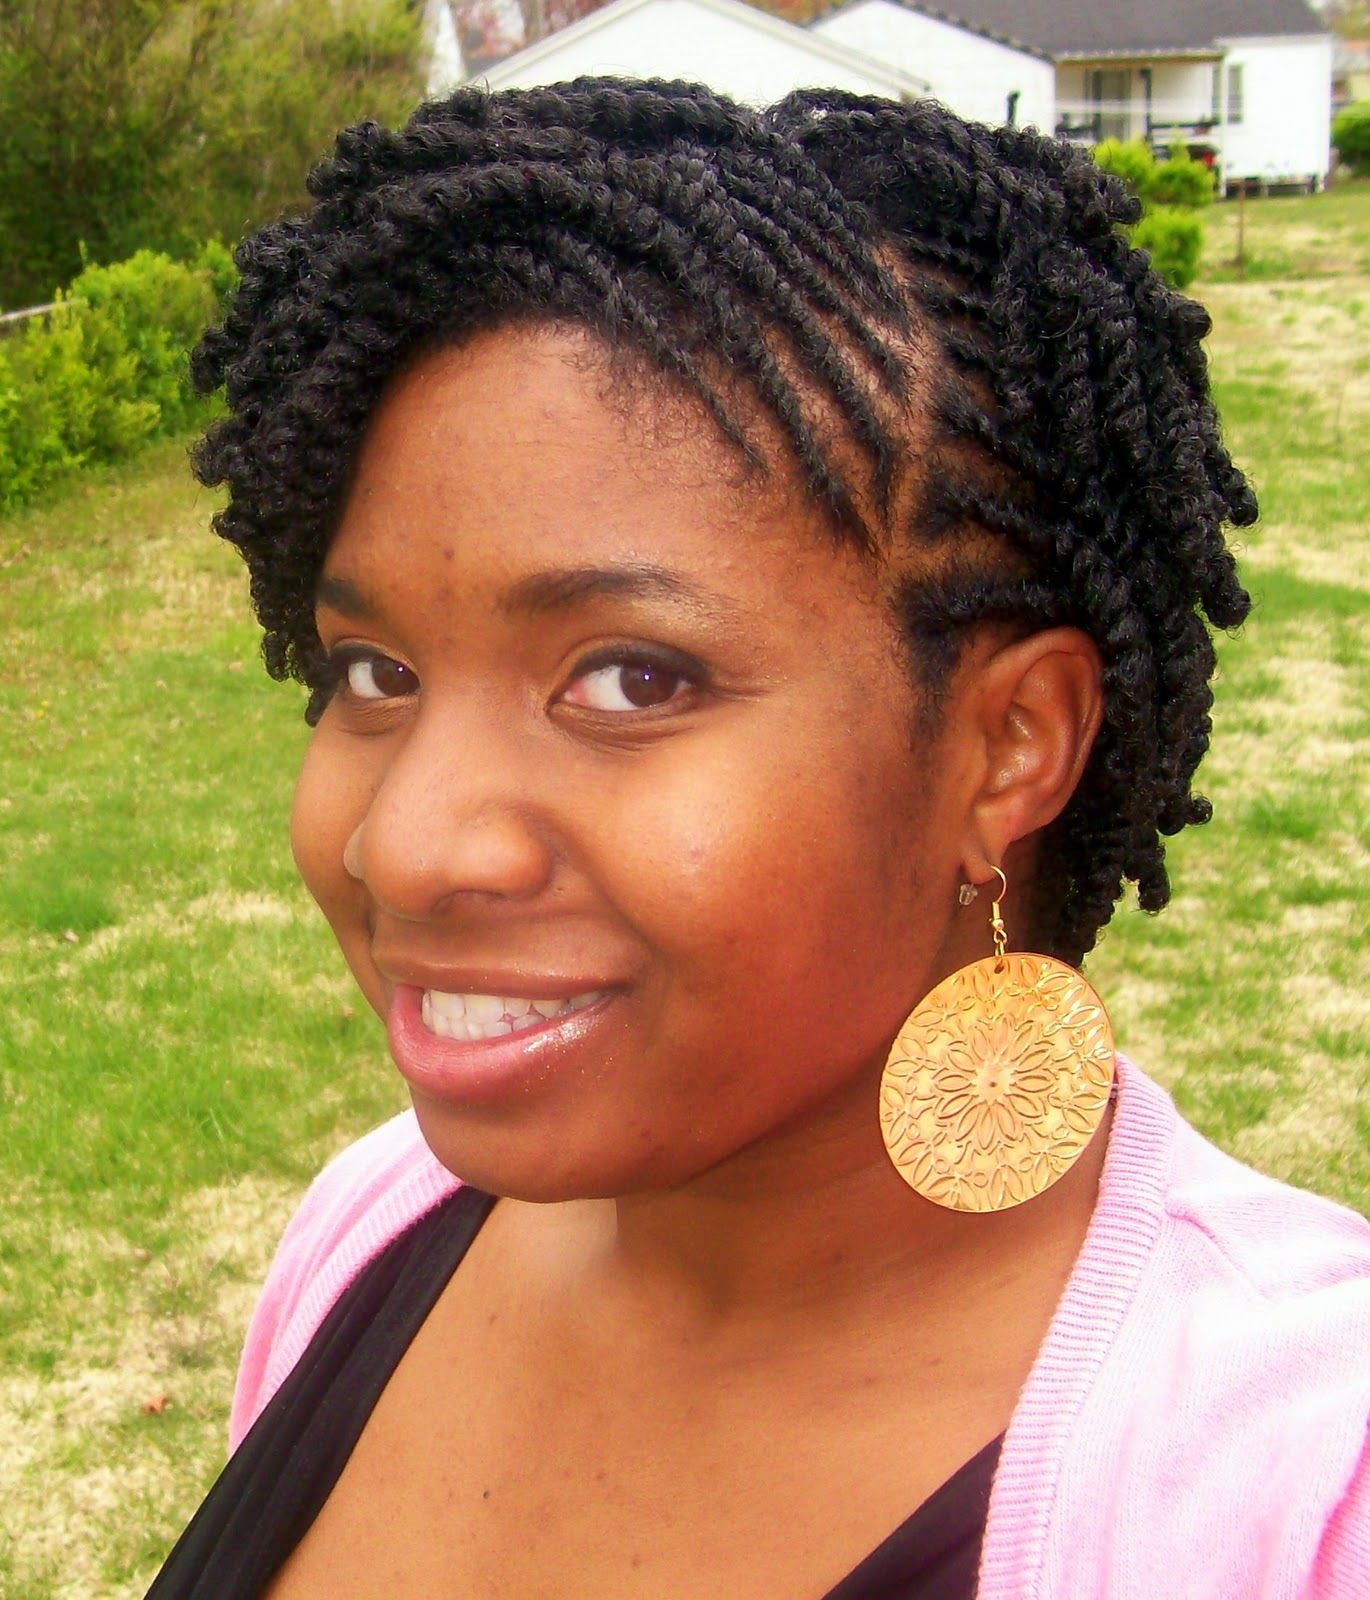 Prime 1000 Images About Natural Hair On Pinterest Black Women Natural Short Hairstyles Gunalazisus